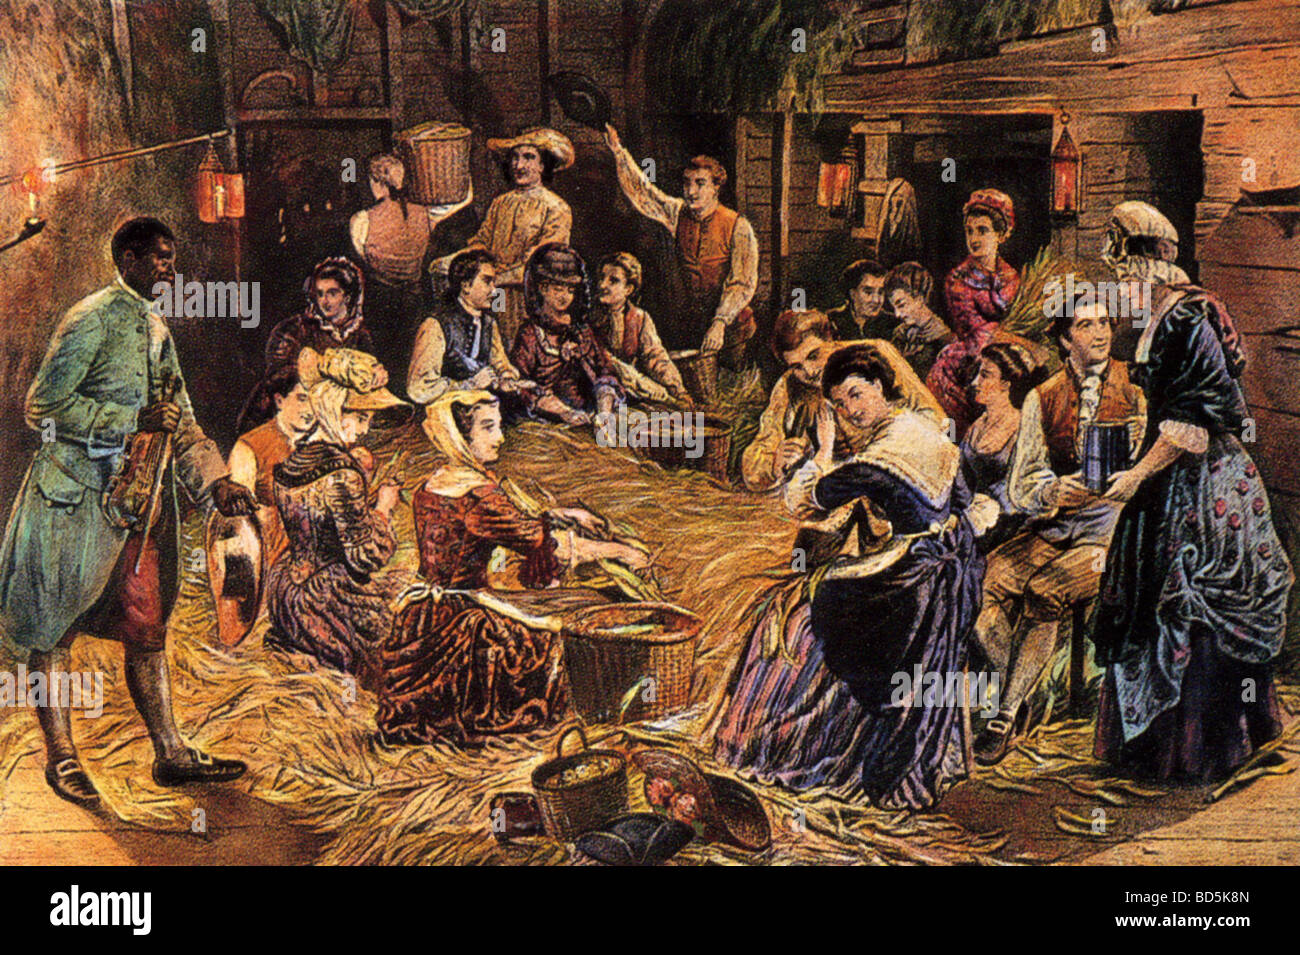 RURAL CORNHUSKING  in 18th century America with musician at left - Stock Image